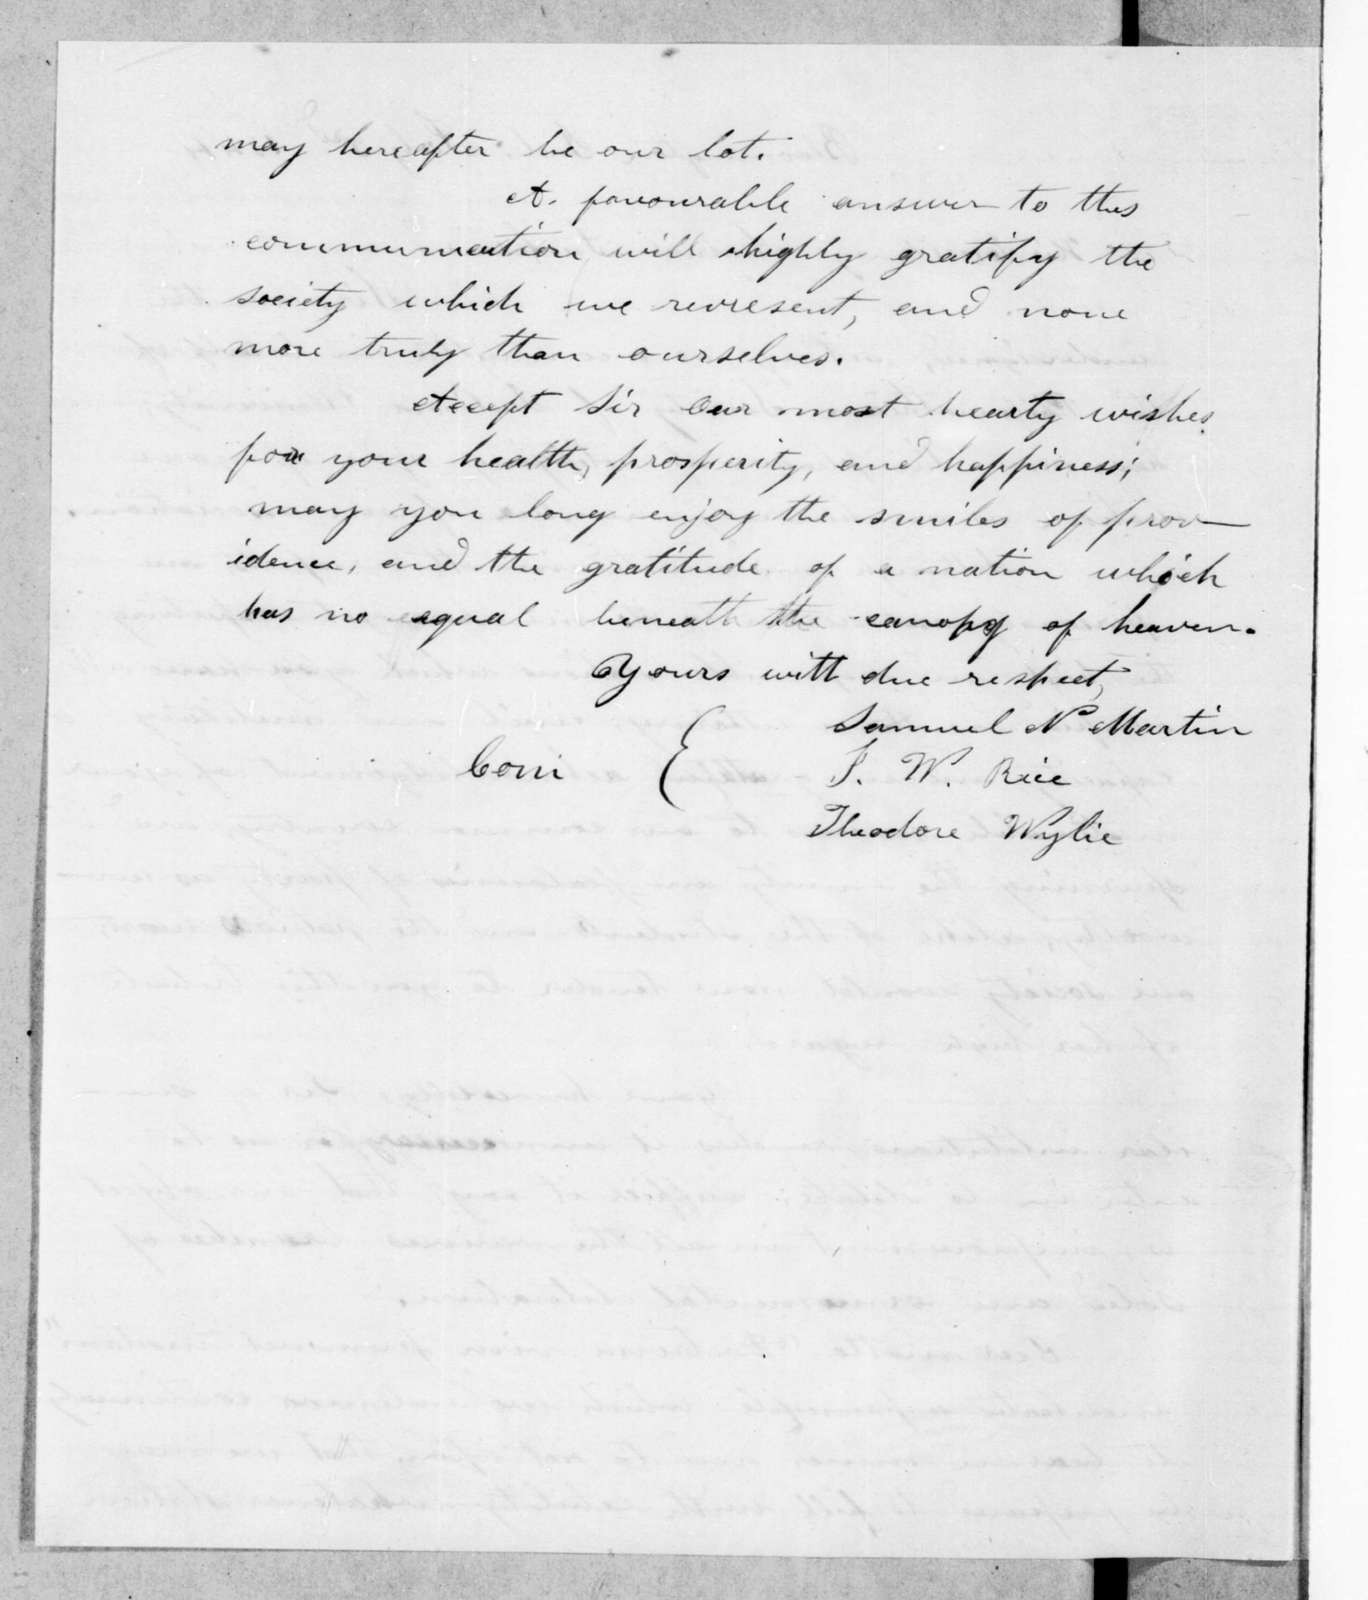 Samuel N. Martin to Andrew Jackson, July 3, 1844